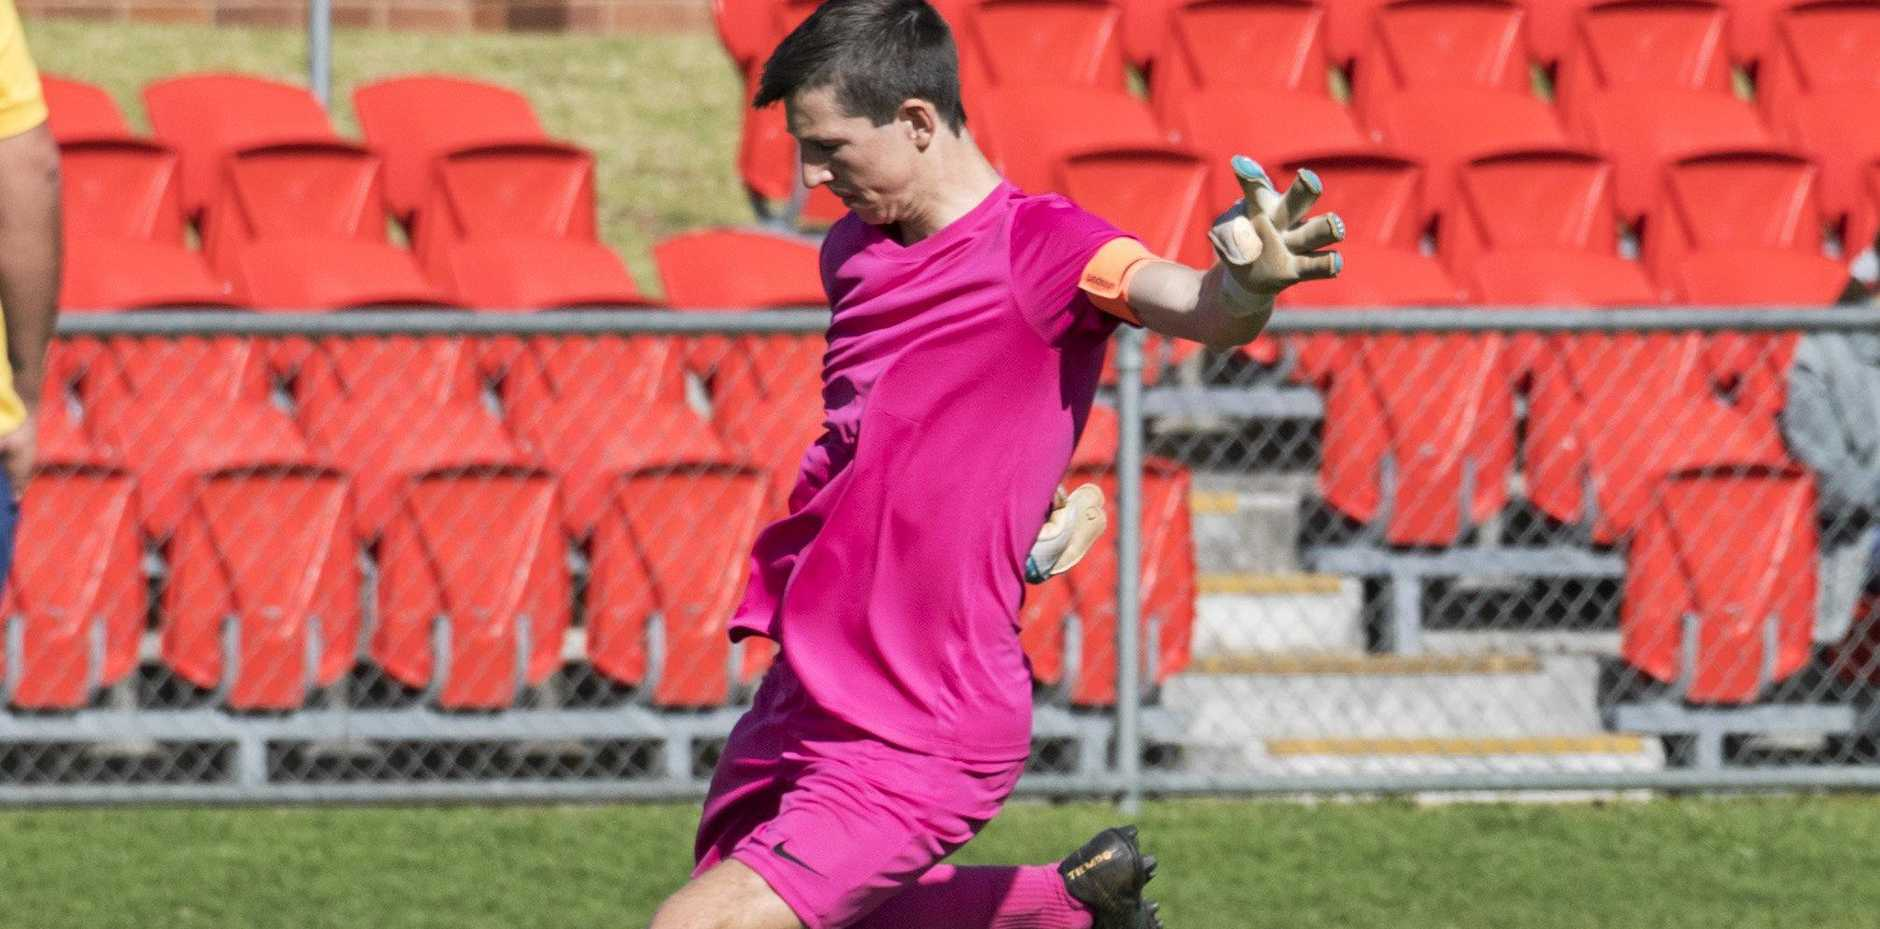 BEST OF SPORT: West Wanderers Wahoos keeper Scott Quick sends the ball downfield during the Toowoomba Football League under-14/15A grand final. Voting is now open for The Chronicle's Best of Sport Junior Soccer Coach.